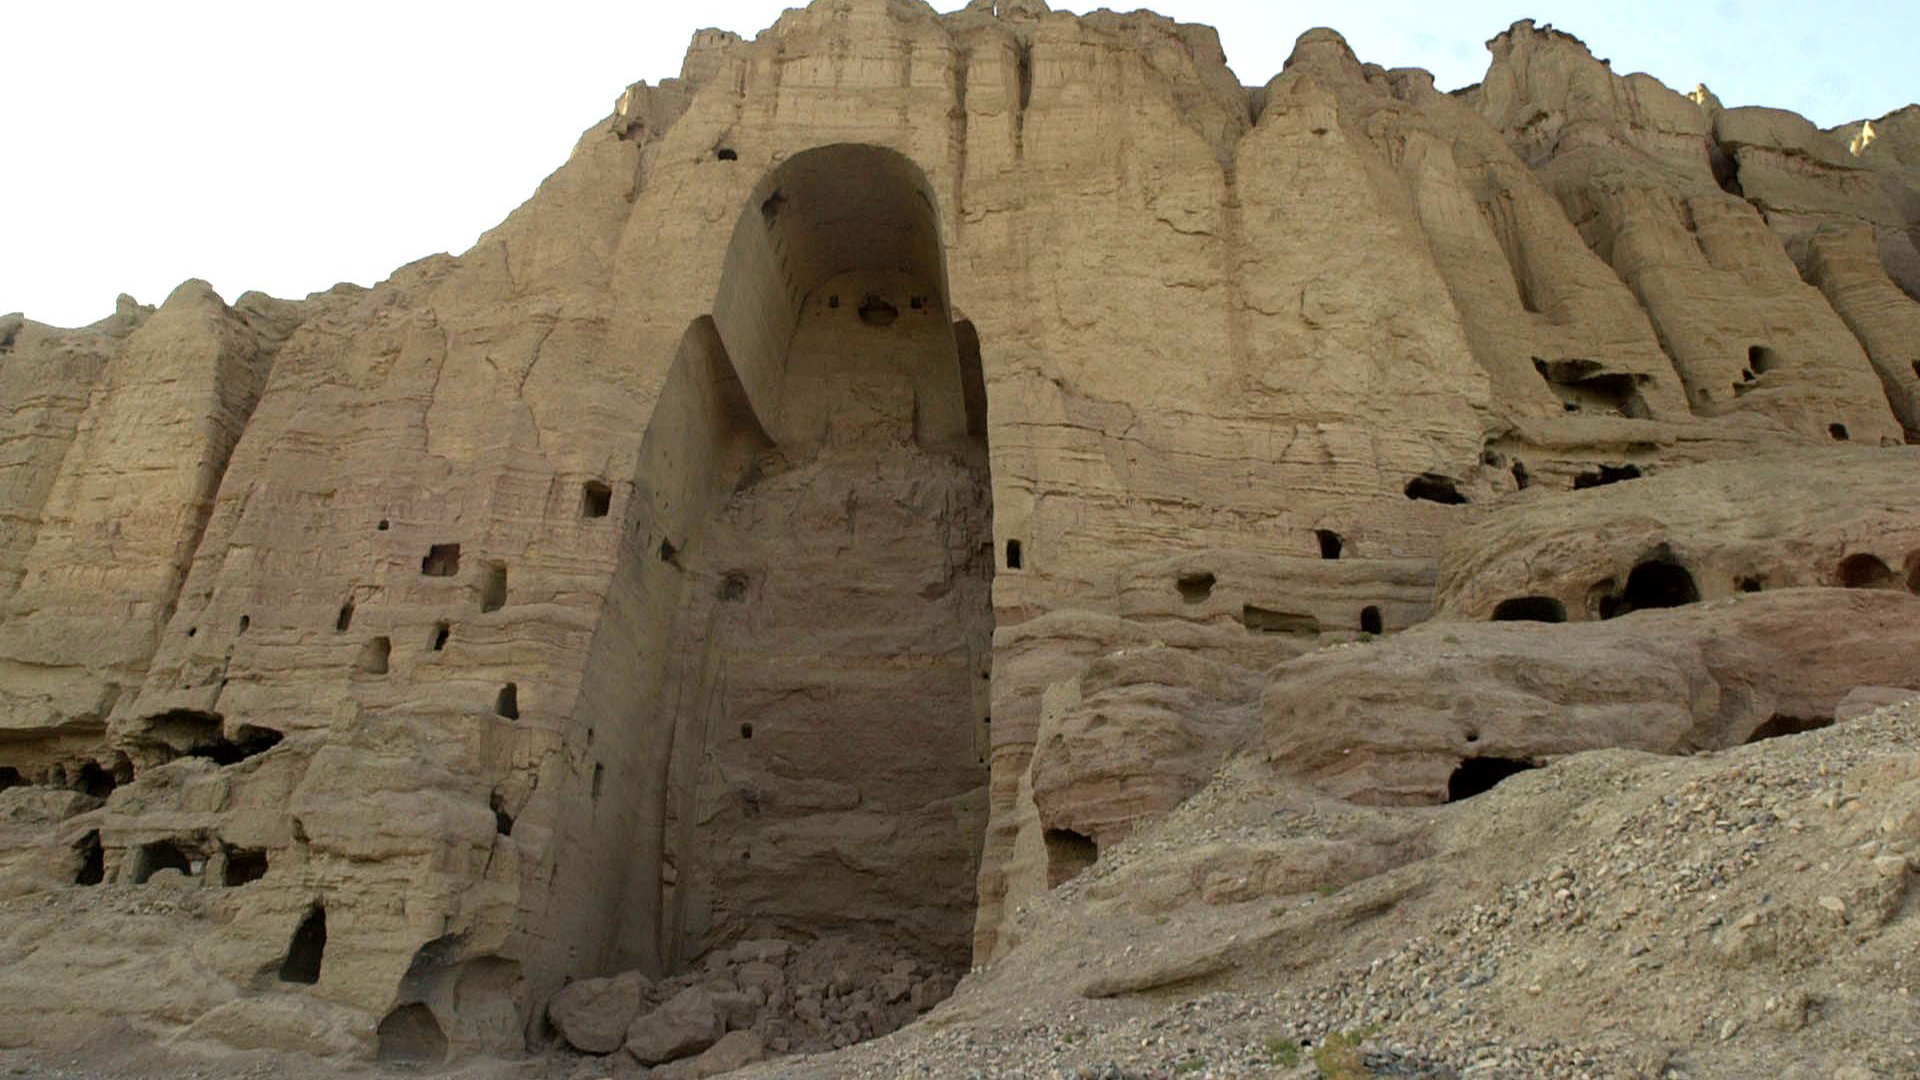 A destroyed 2000 year-old Buddha of Bamiyan in Afghanistan is cultural heritage intentionally destroyed by Taliban, so what, if anything, should be done about its restoration?